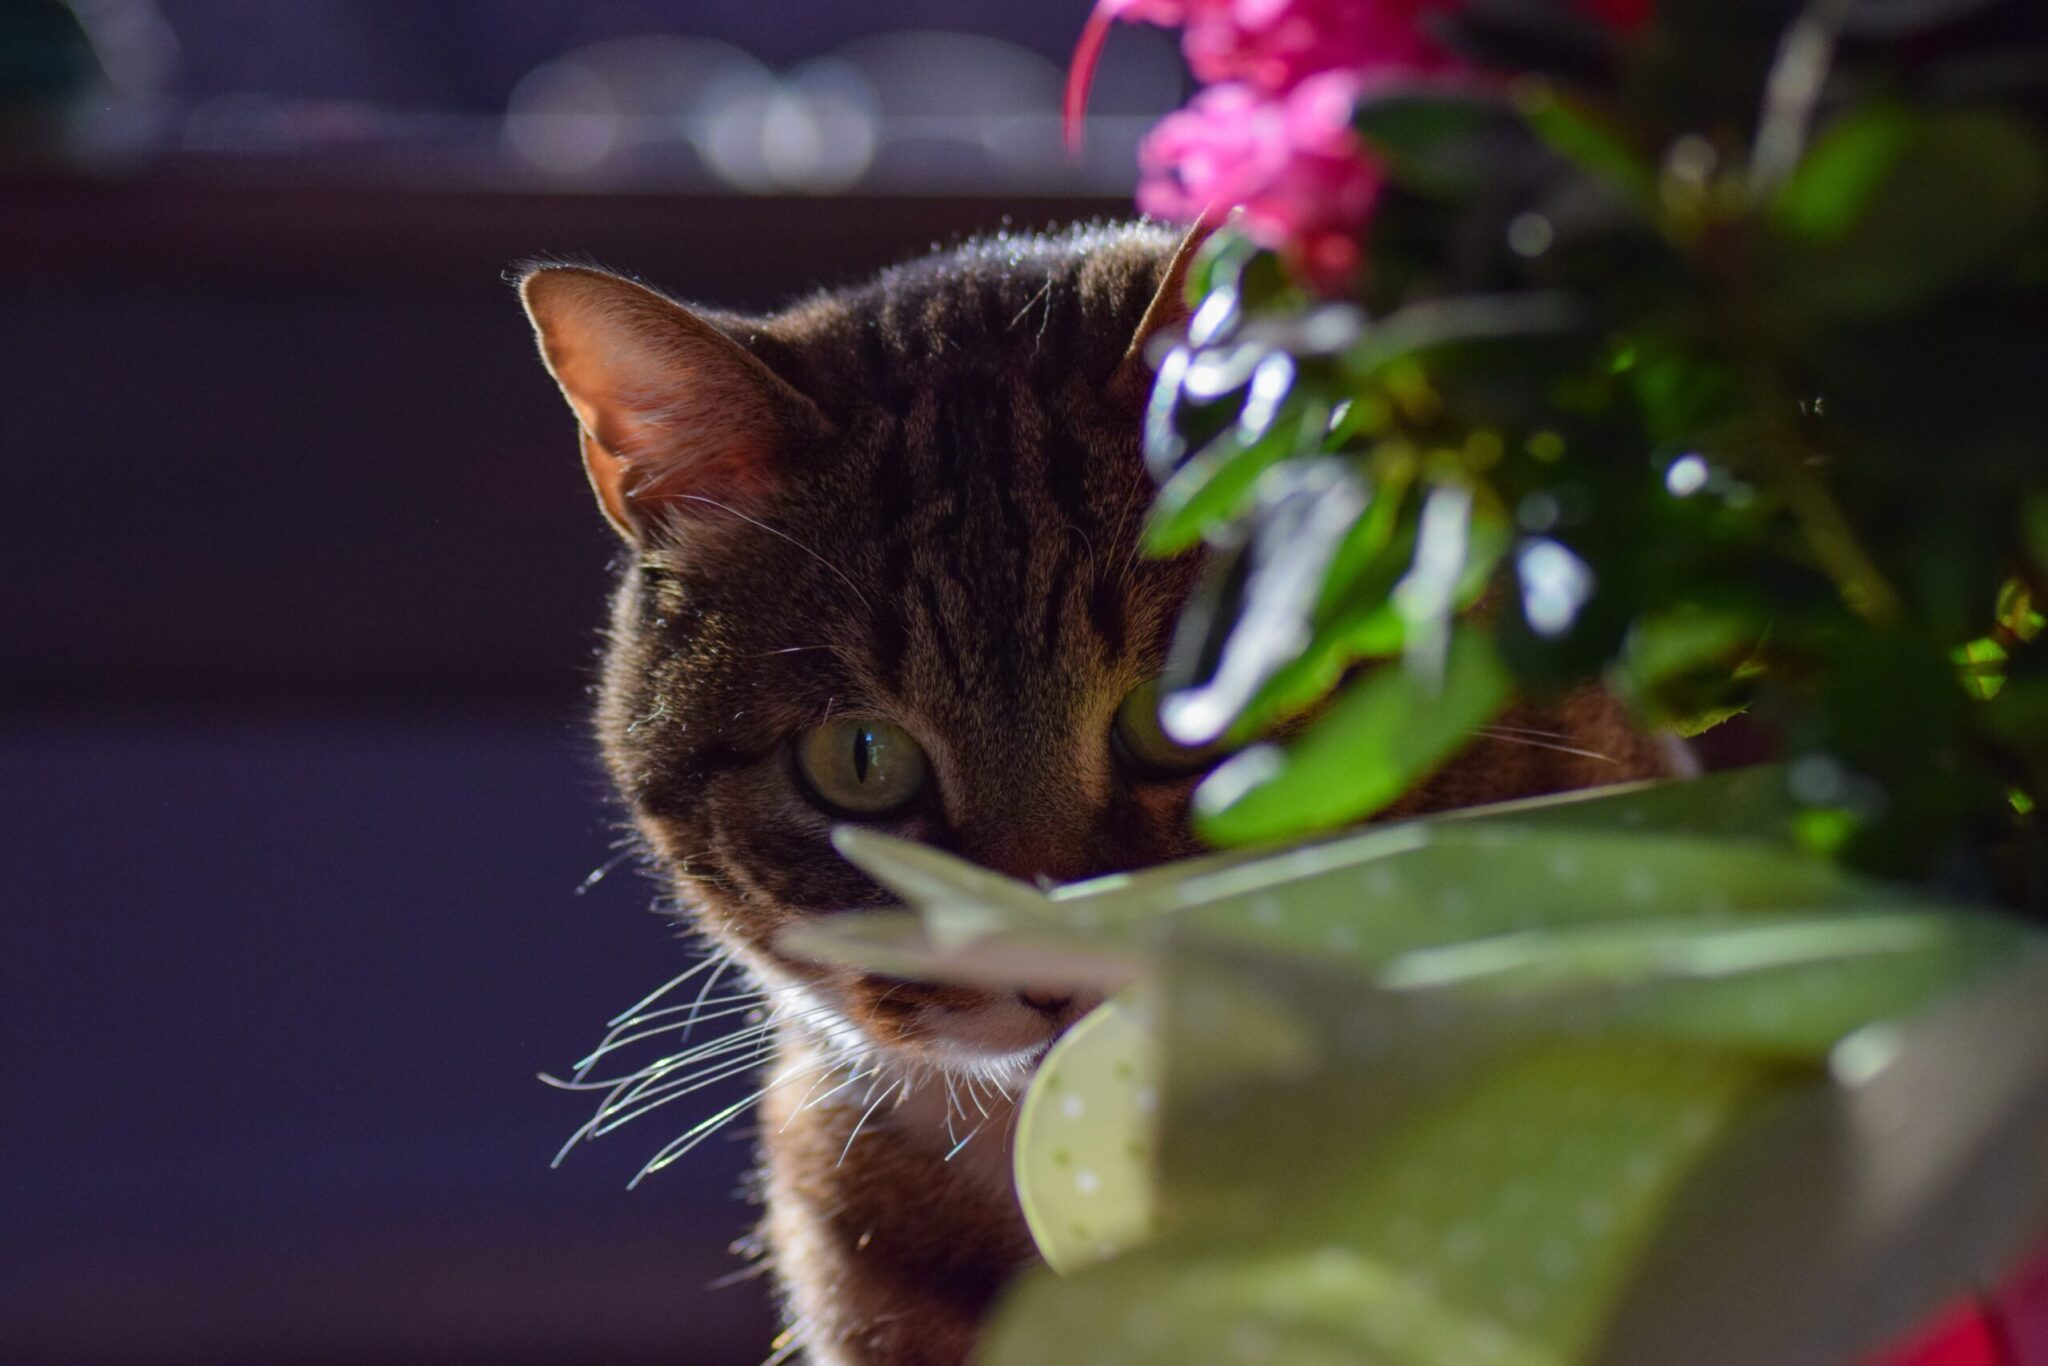 a cat hiding halfway behind a plant with a pink flower to show a reticence to reveal more of its presence and power to connect